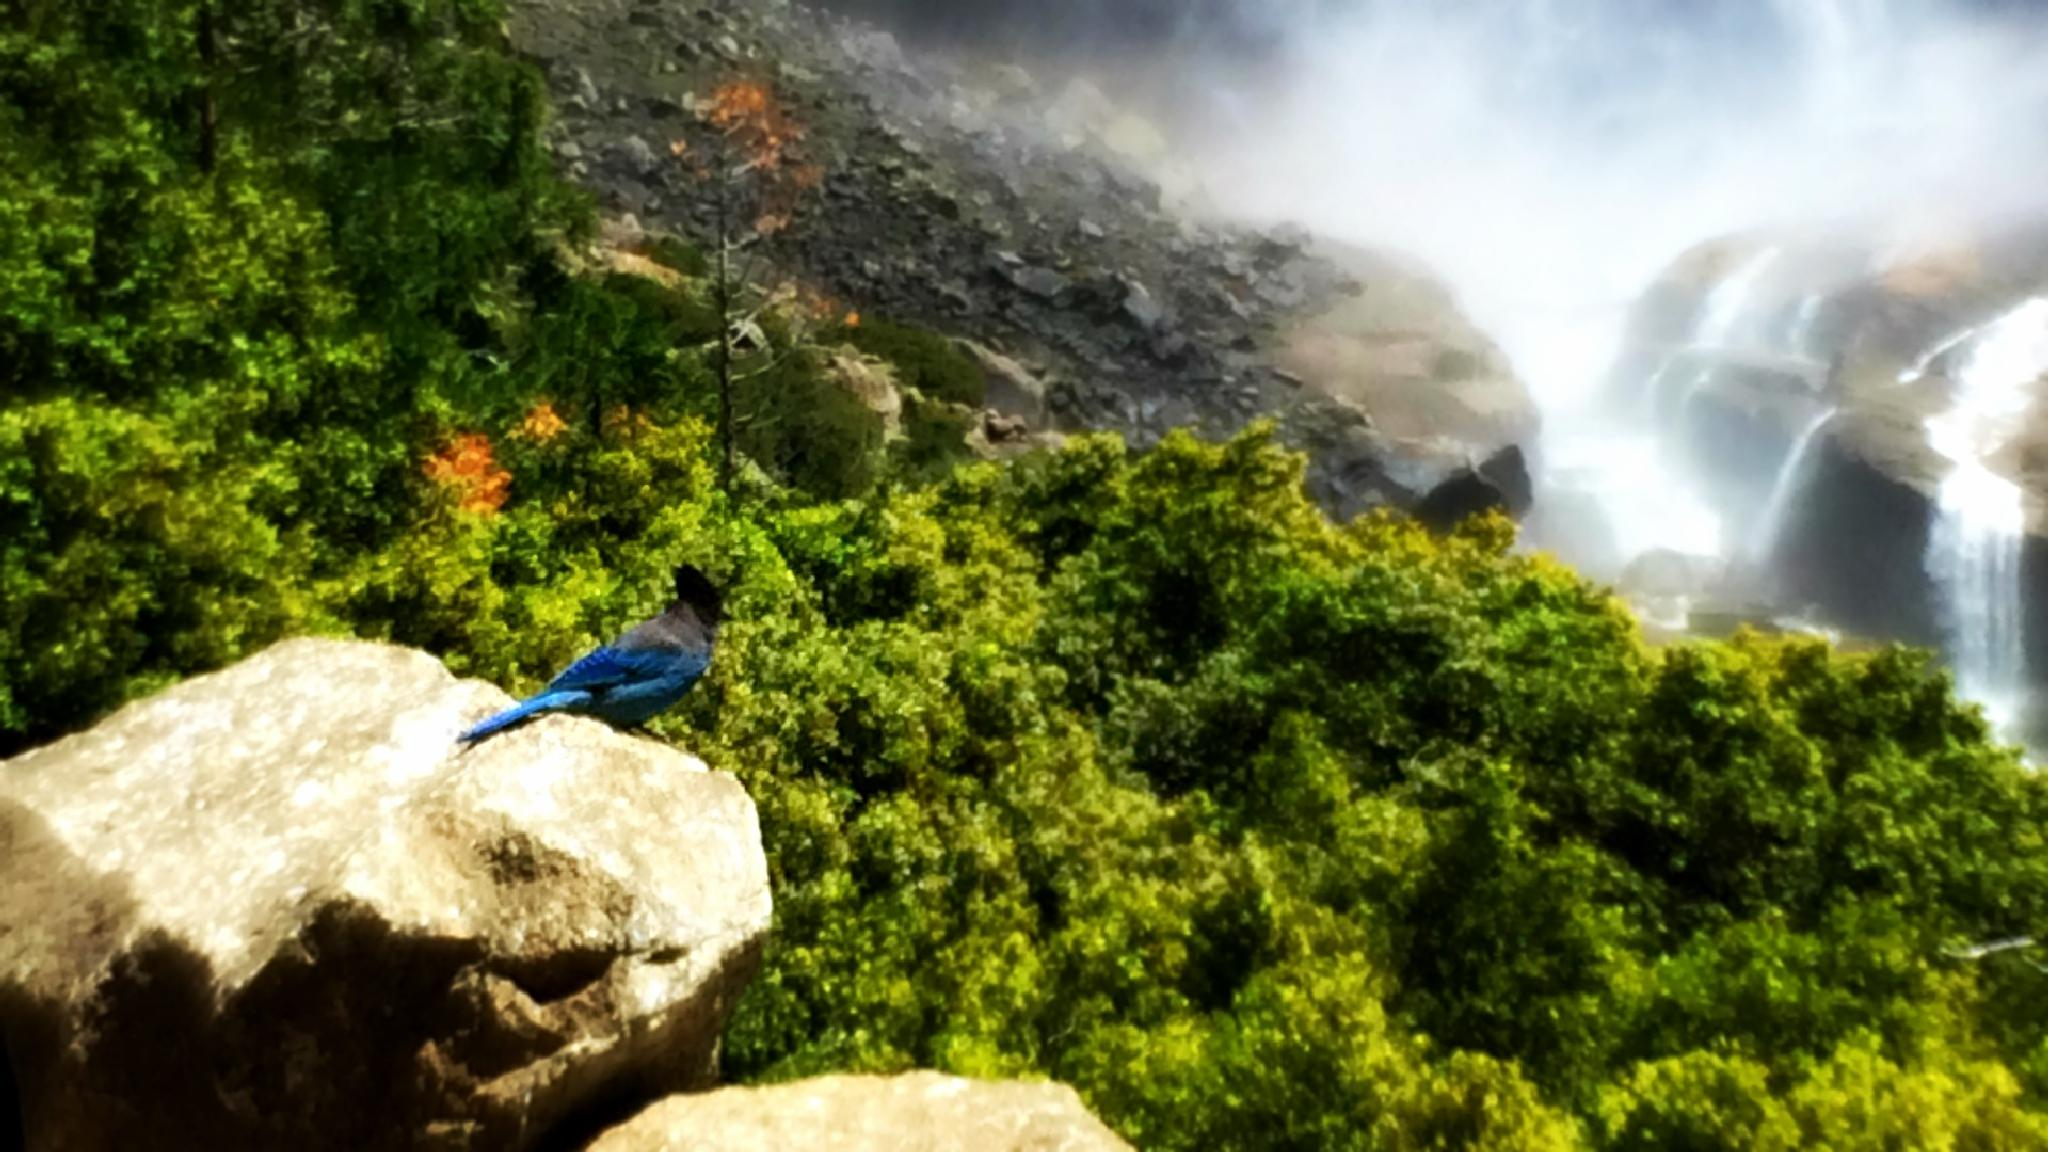 Blue Jay at Yosemite Falls by Victoria Gallagher